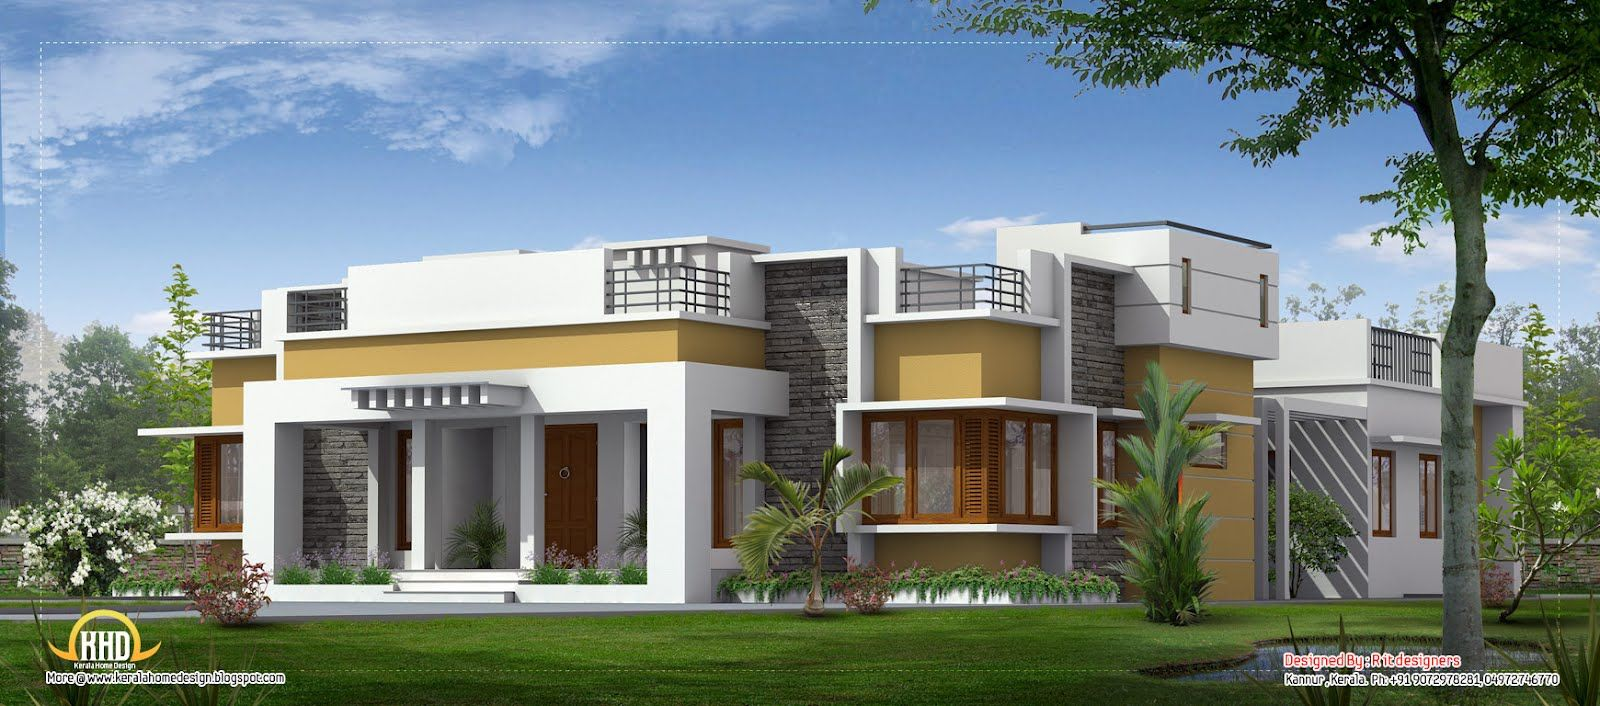 Single level designer home single floor house plans for One level house designs